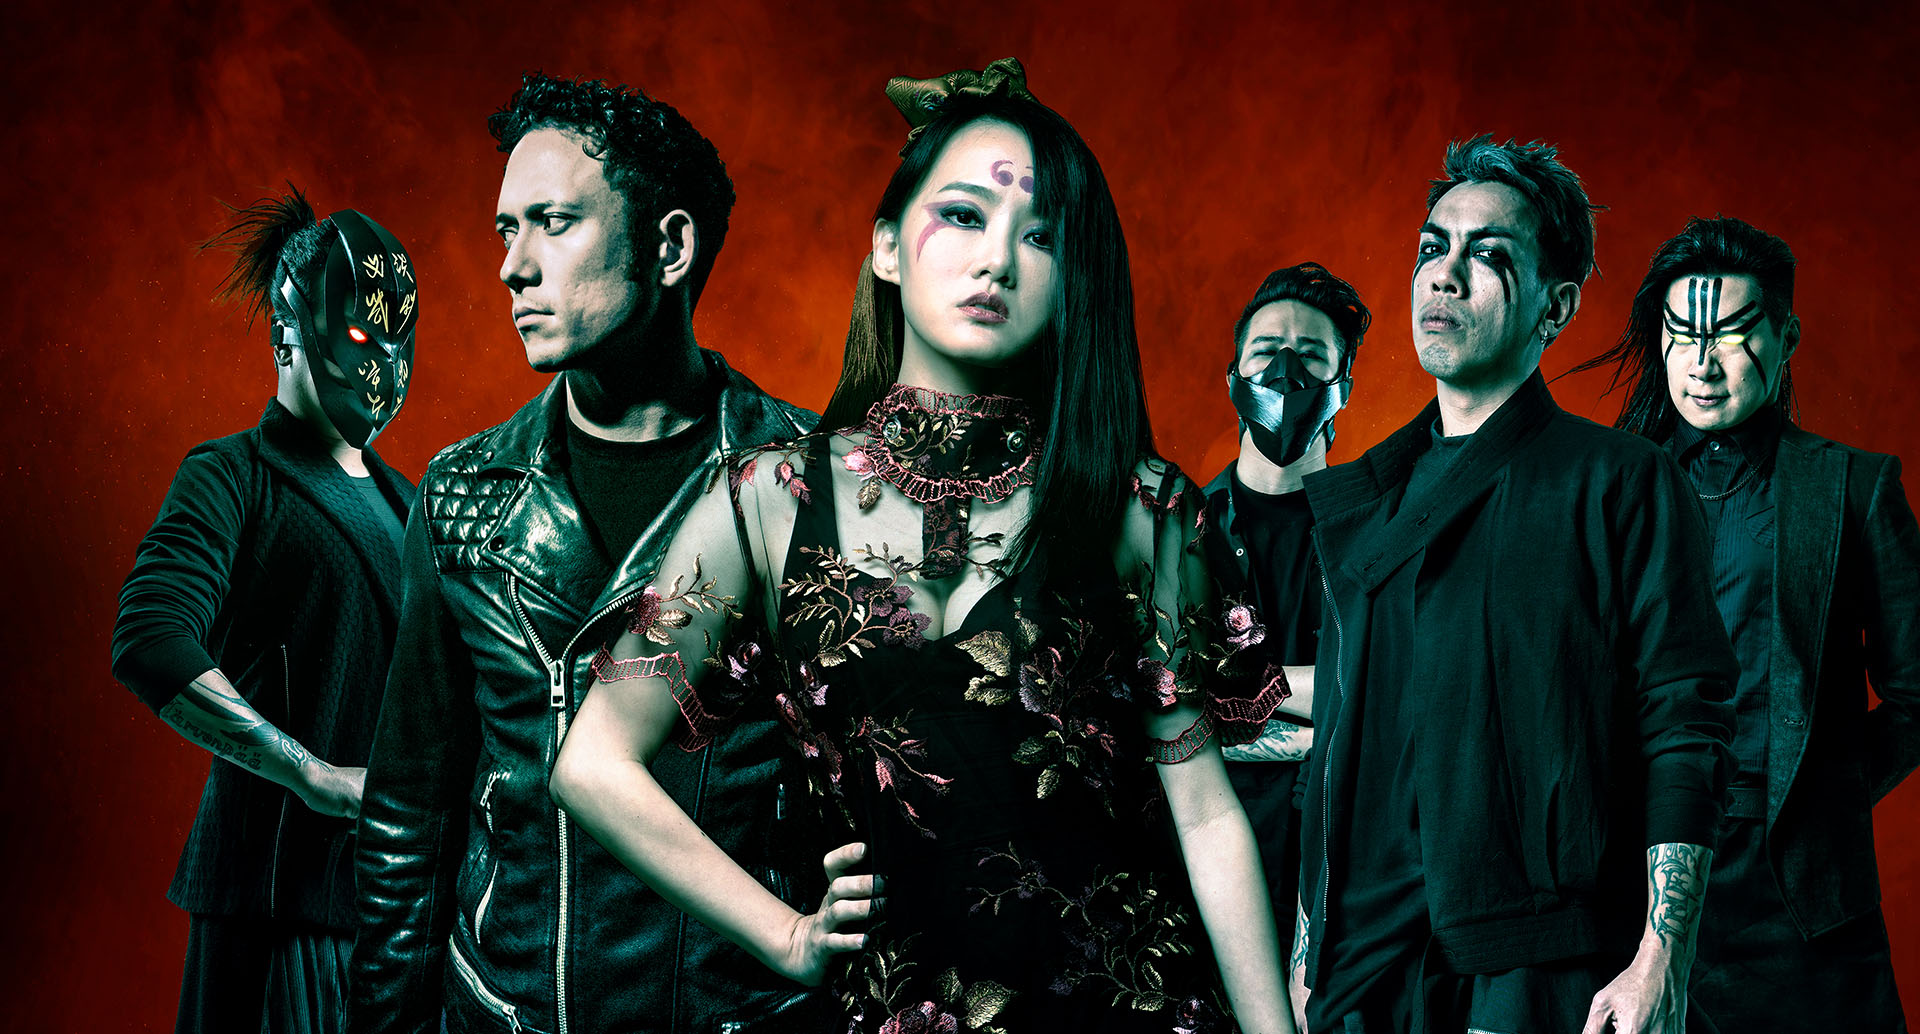 Chthonic finally unveils the rearranged 'Supreme Pain for the Tyrant' featuring Heafy of Trivium